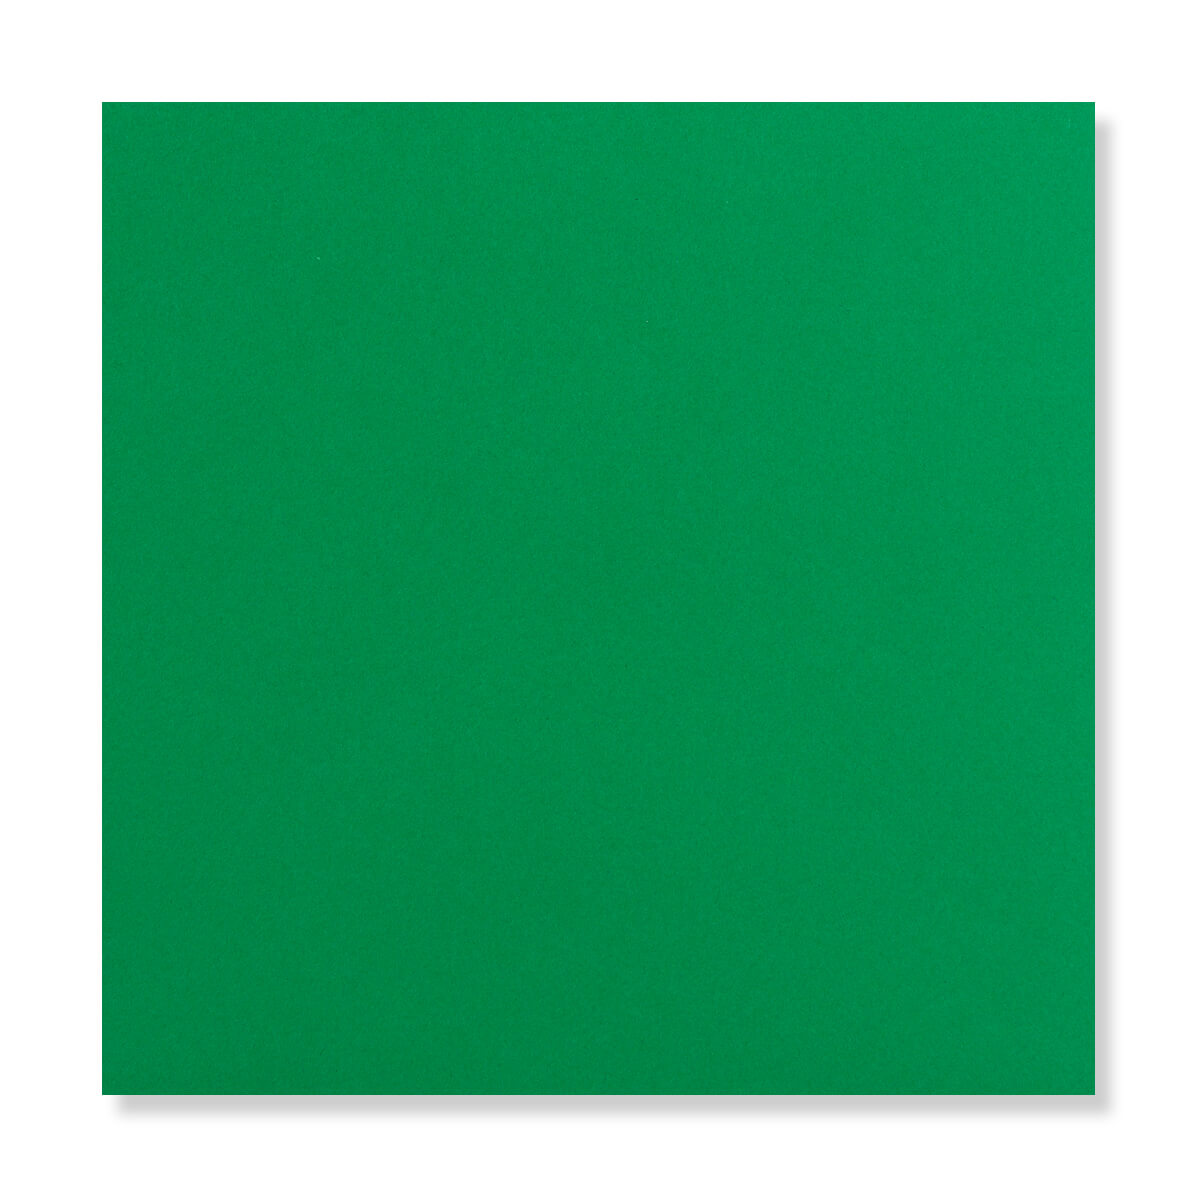 DARK GREEN 155mm SQUARE ENVELOPES 120GSM